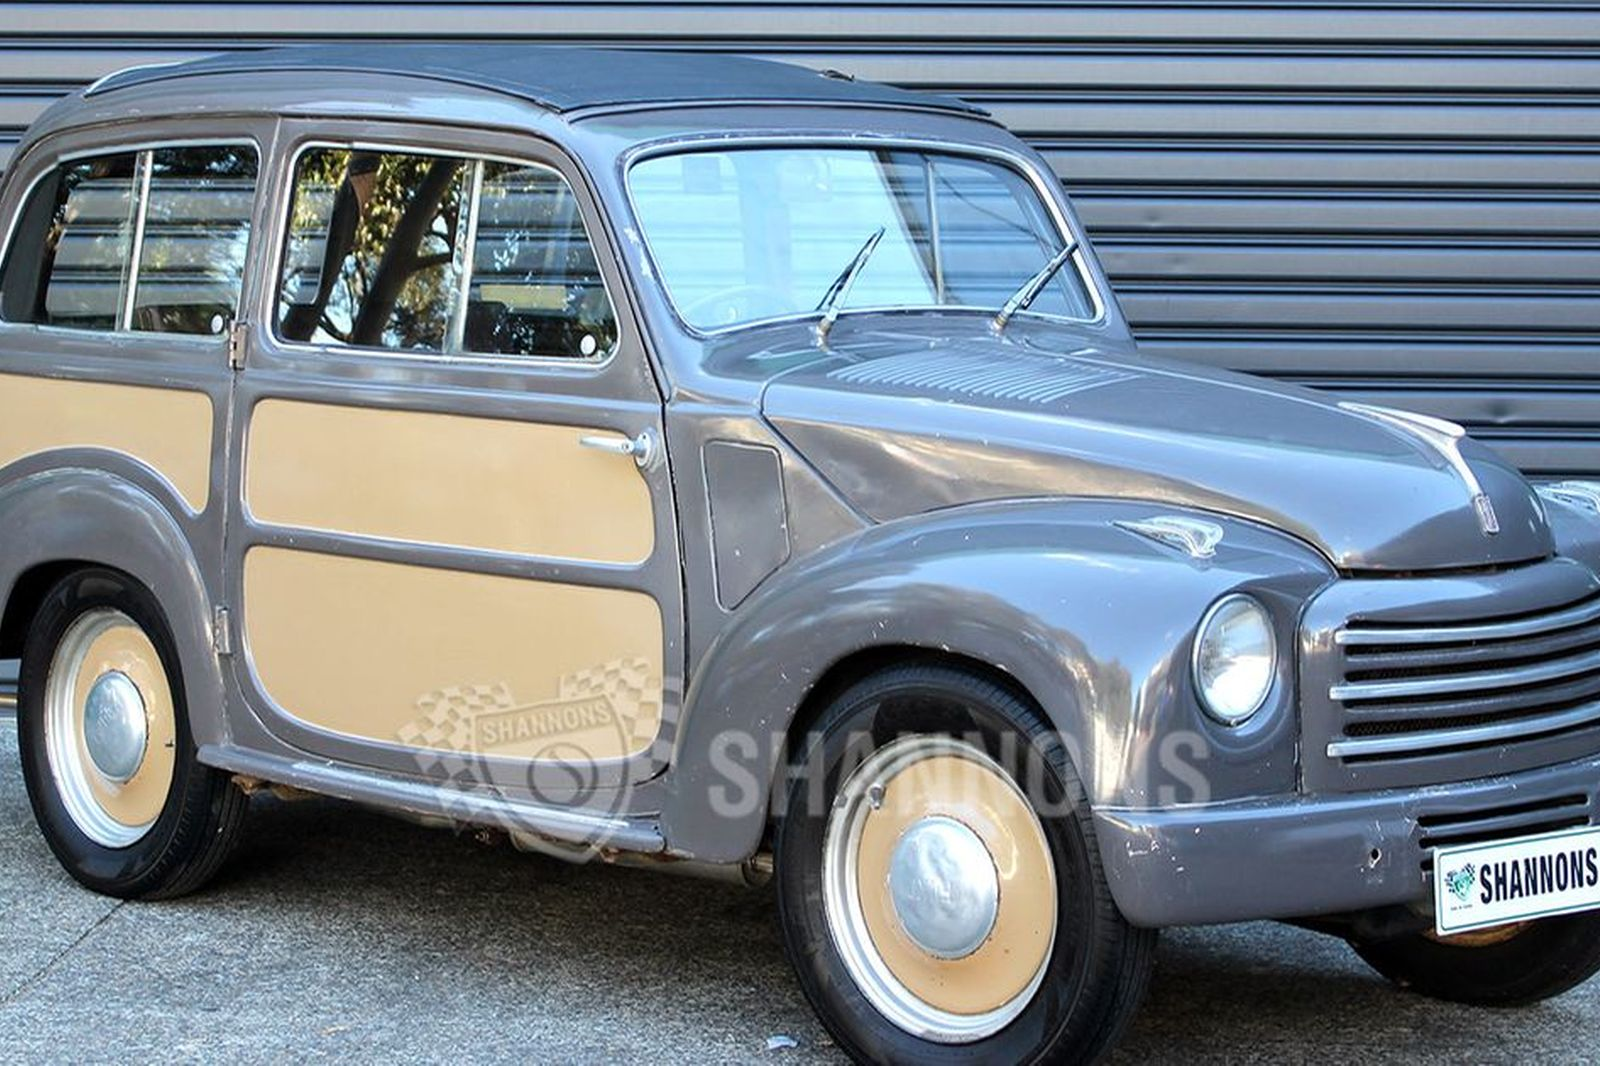 sold: fiat 500 topolino belvedere wagon auctions - lot 8 - shannons